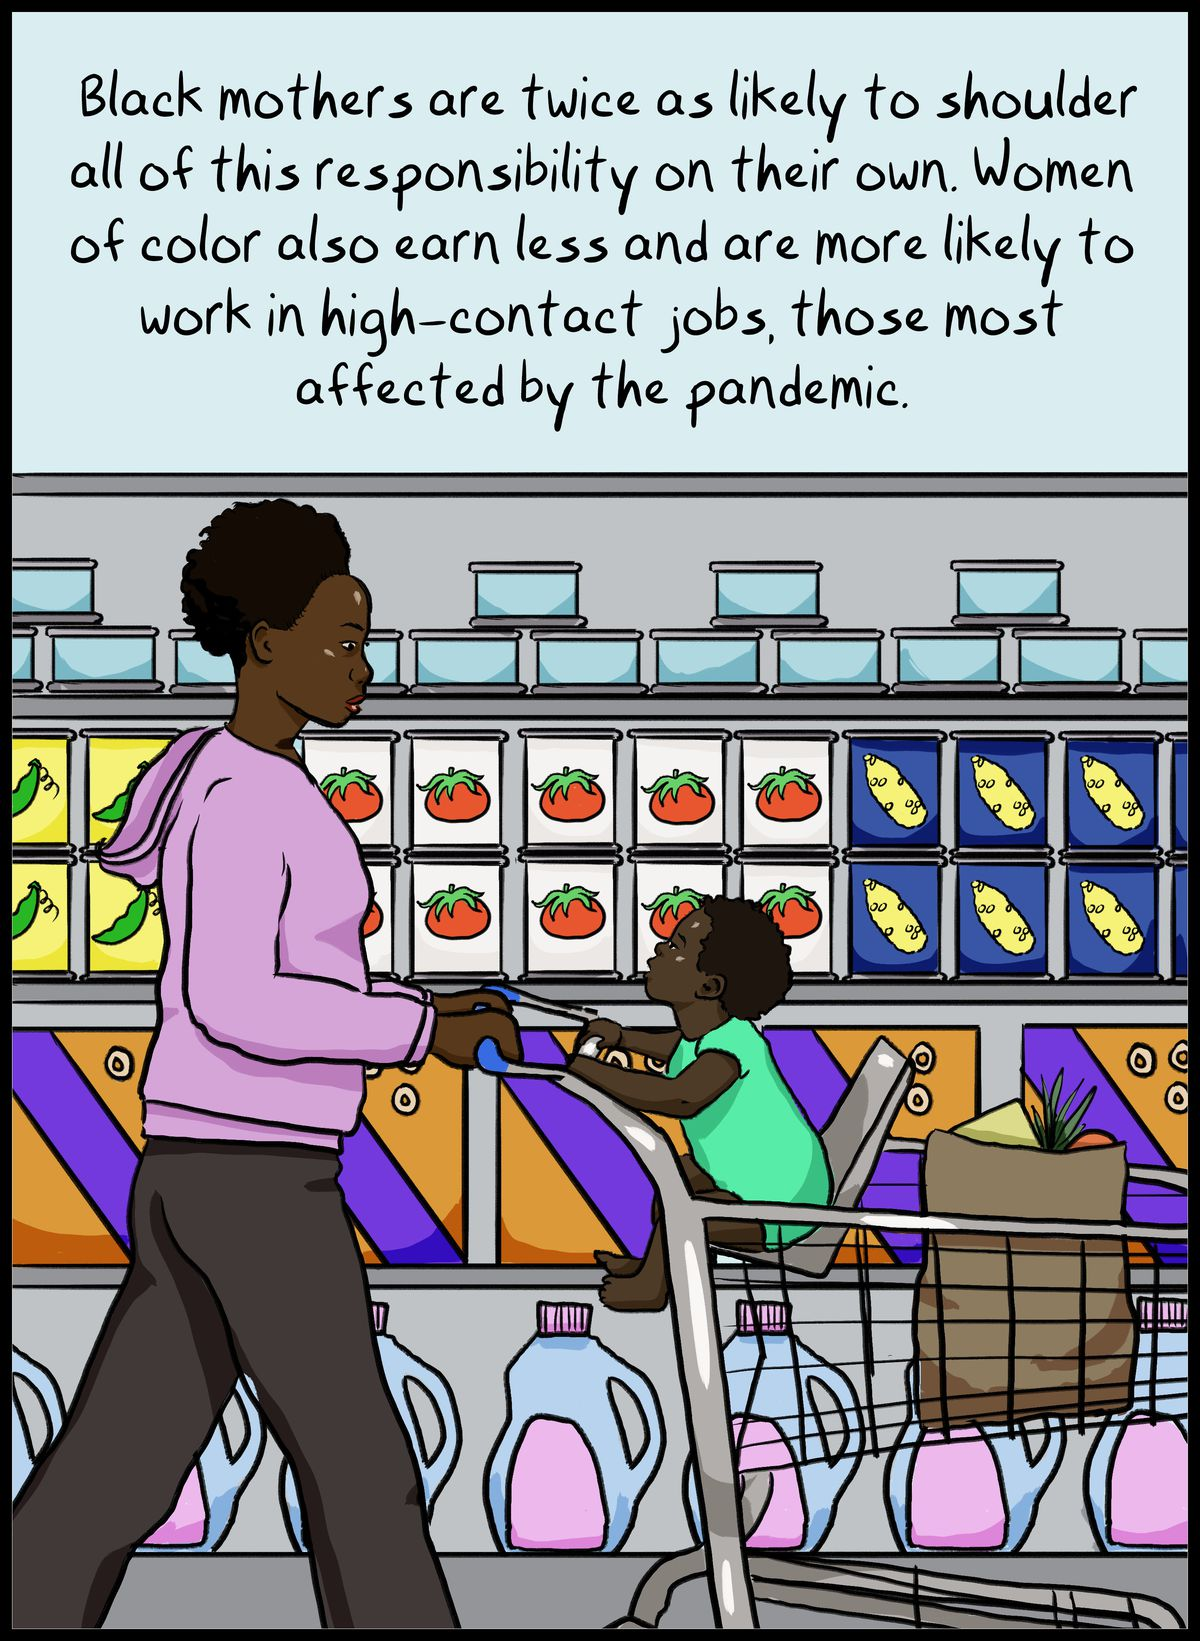 Black mothers are twice as likely to shoulder all of this responsibility on their own: Women of color also earn less and are more likely to work in high-contact jobs, those most affected by the pandemic.